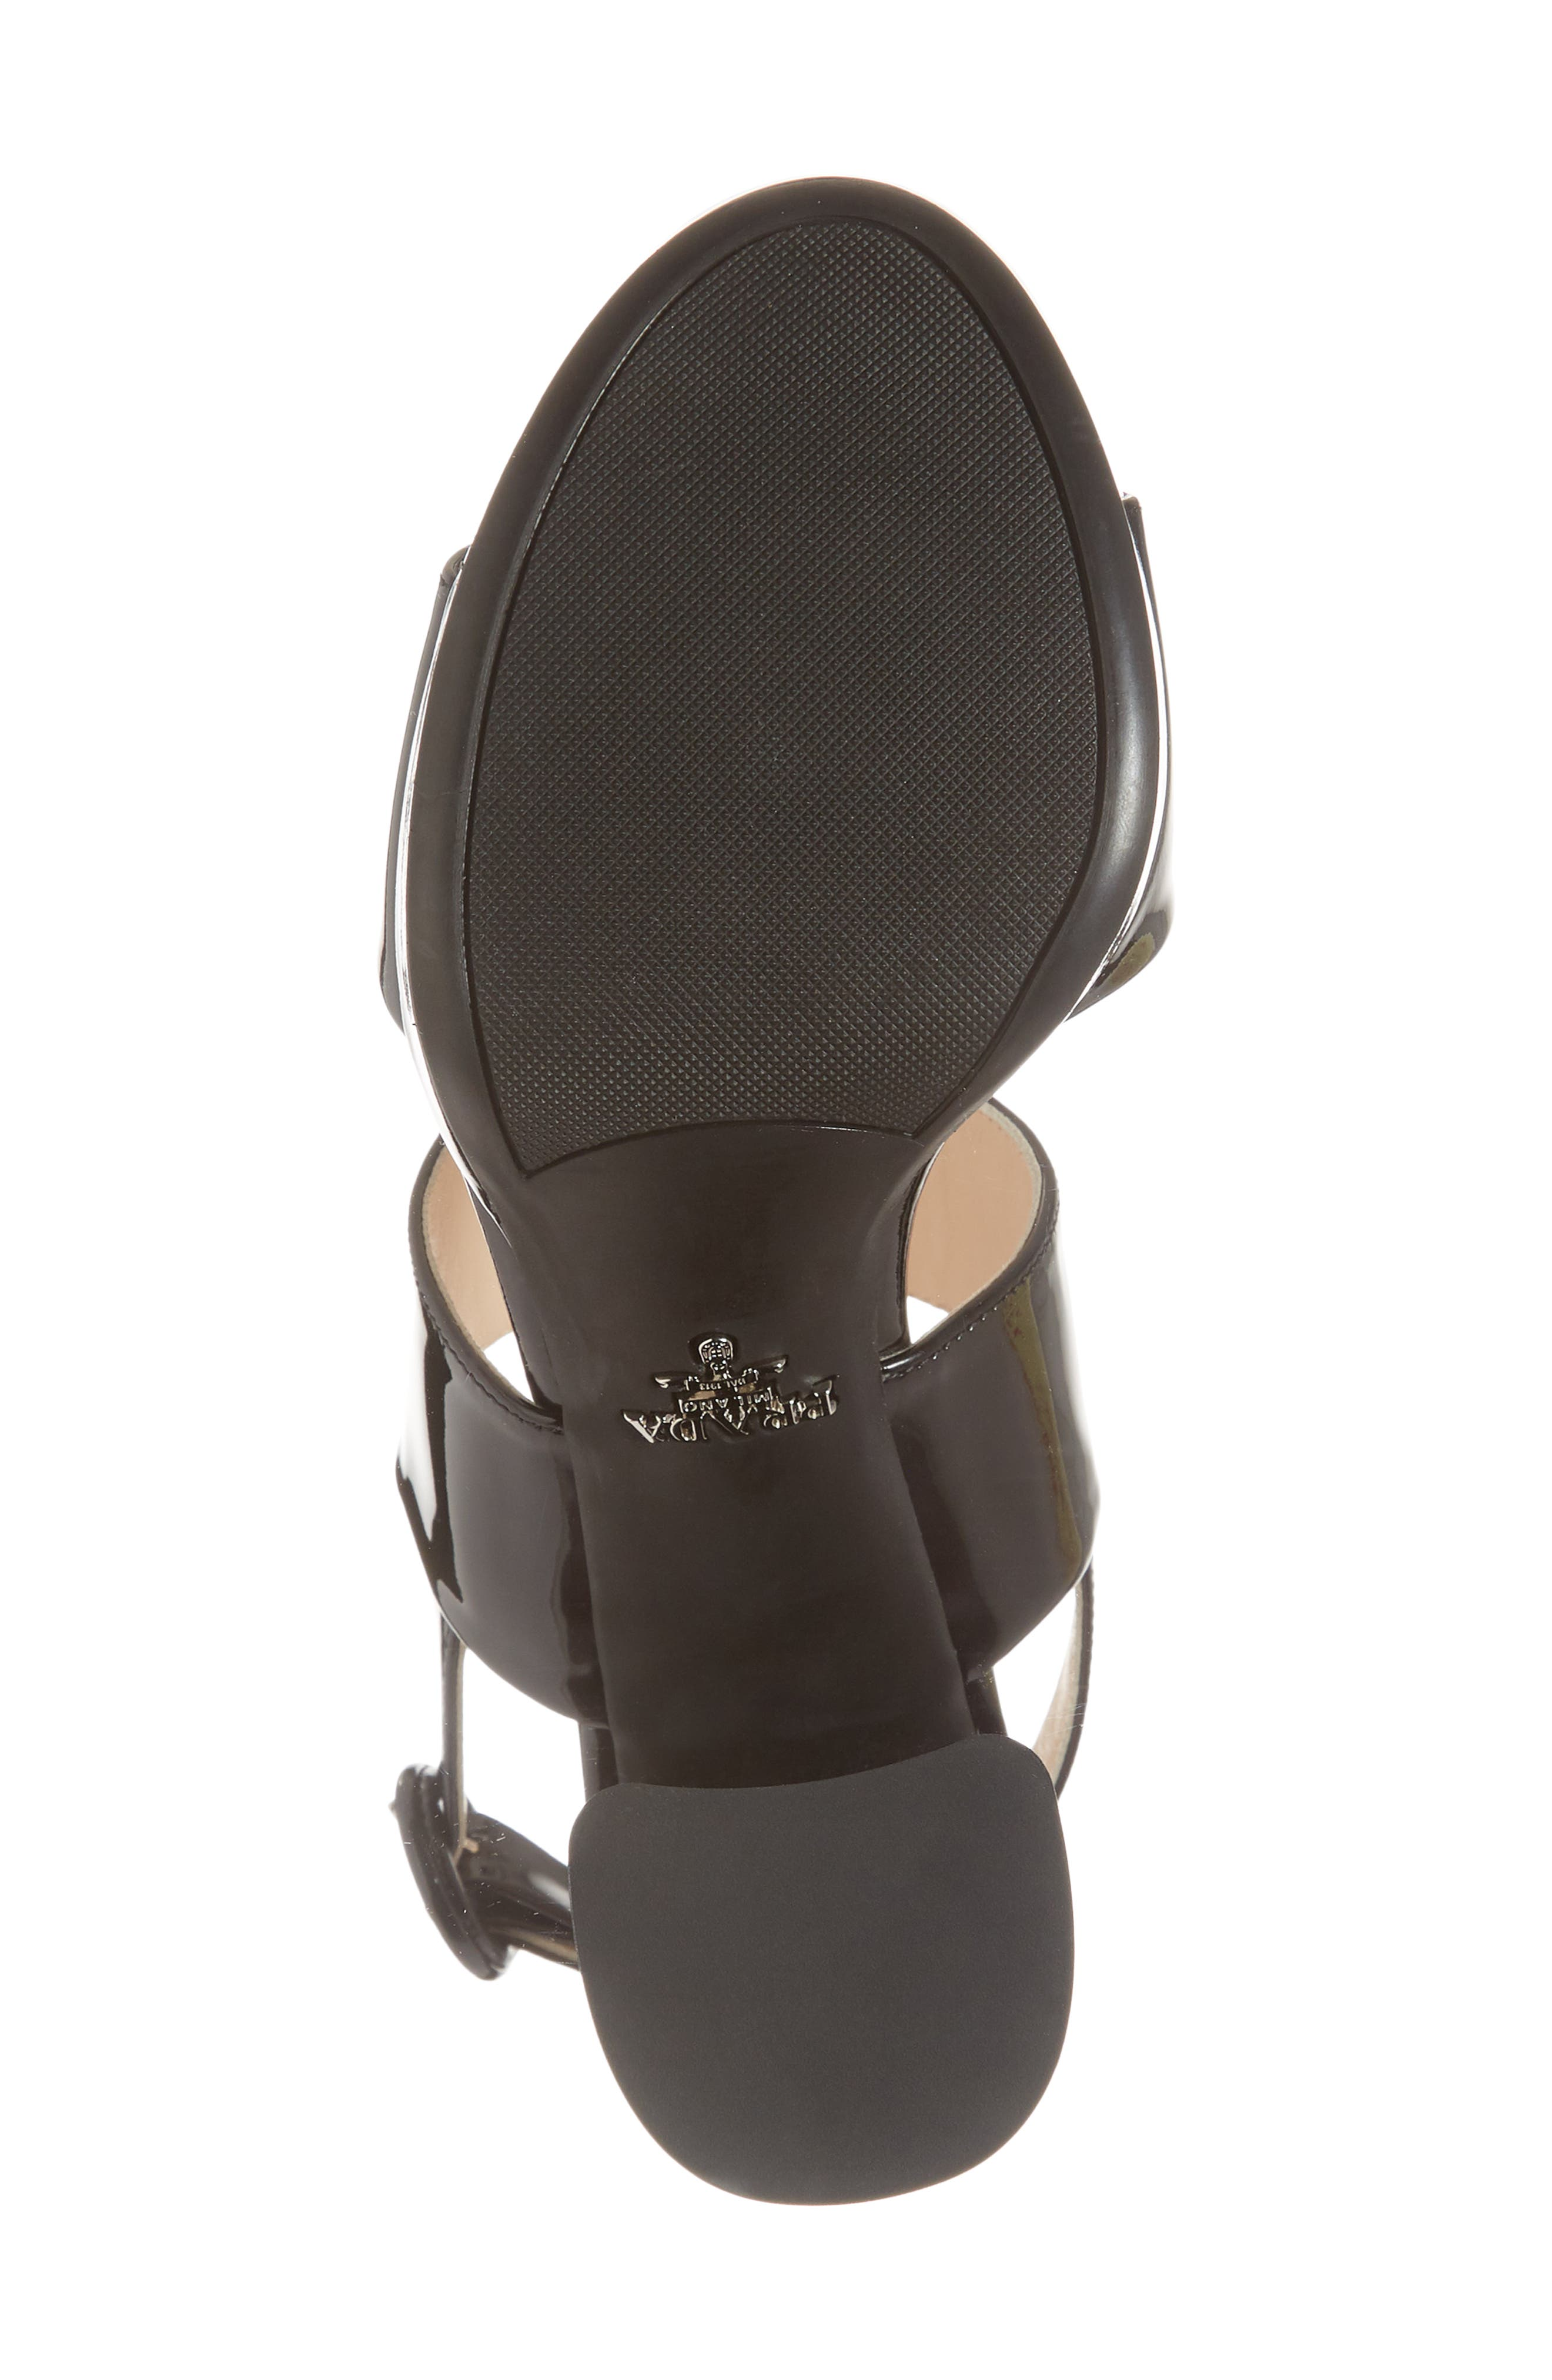 PRADA, Slingback Platform Sandal, Alternate thumbnail 6, color, BLACK PATENT